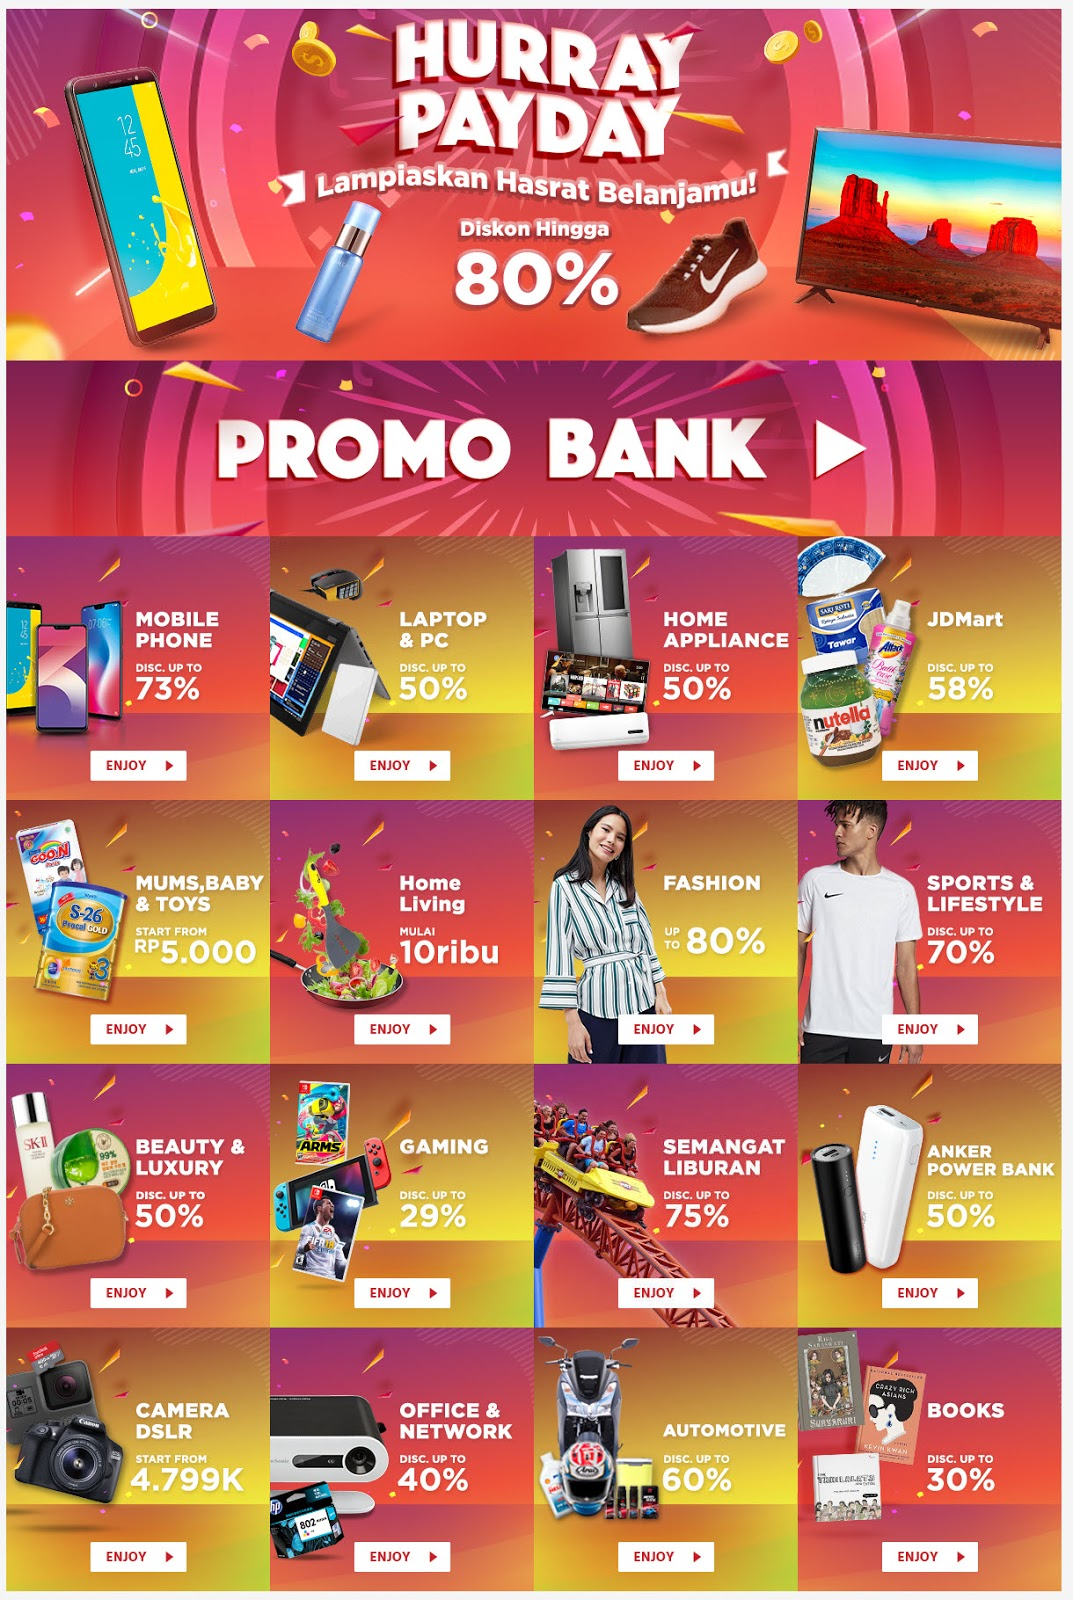 JdId - Multi Promo Hurray PayDay Diskon s.d 80% Periode September 2018